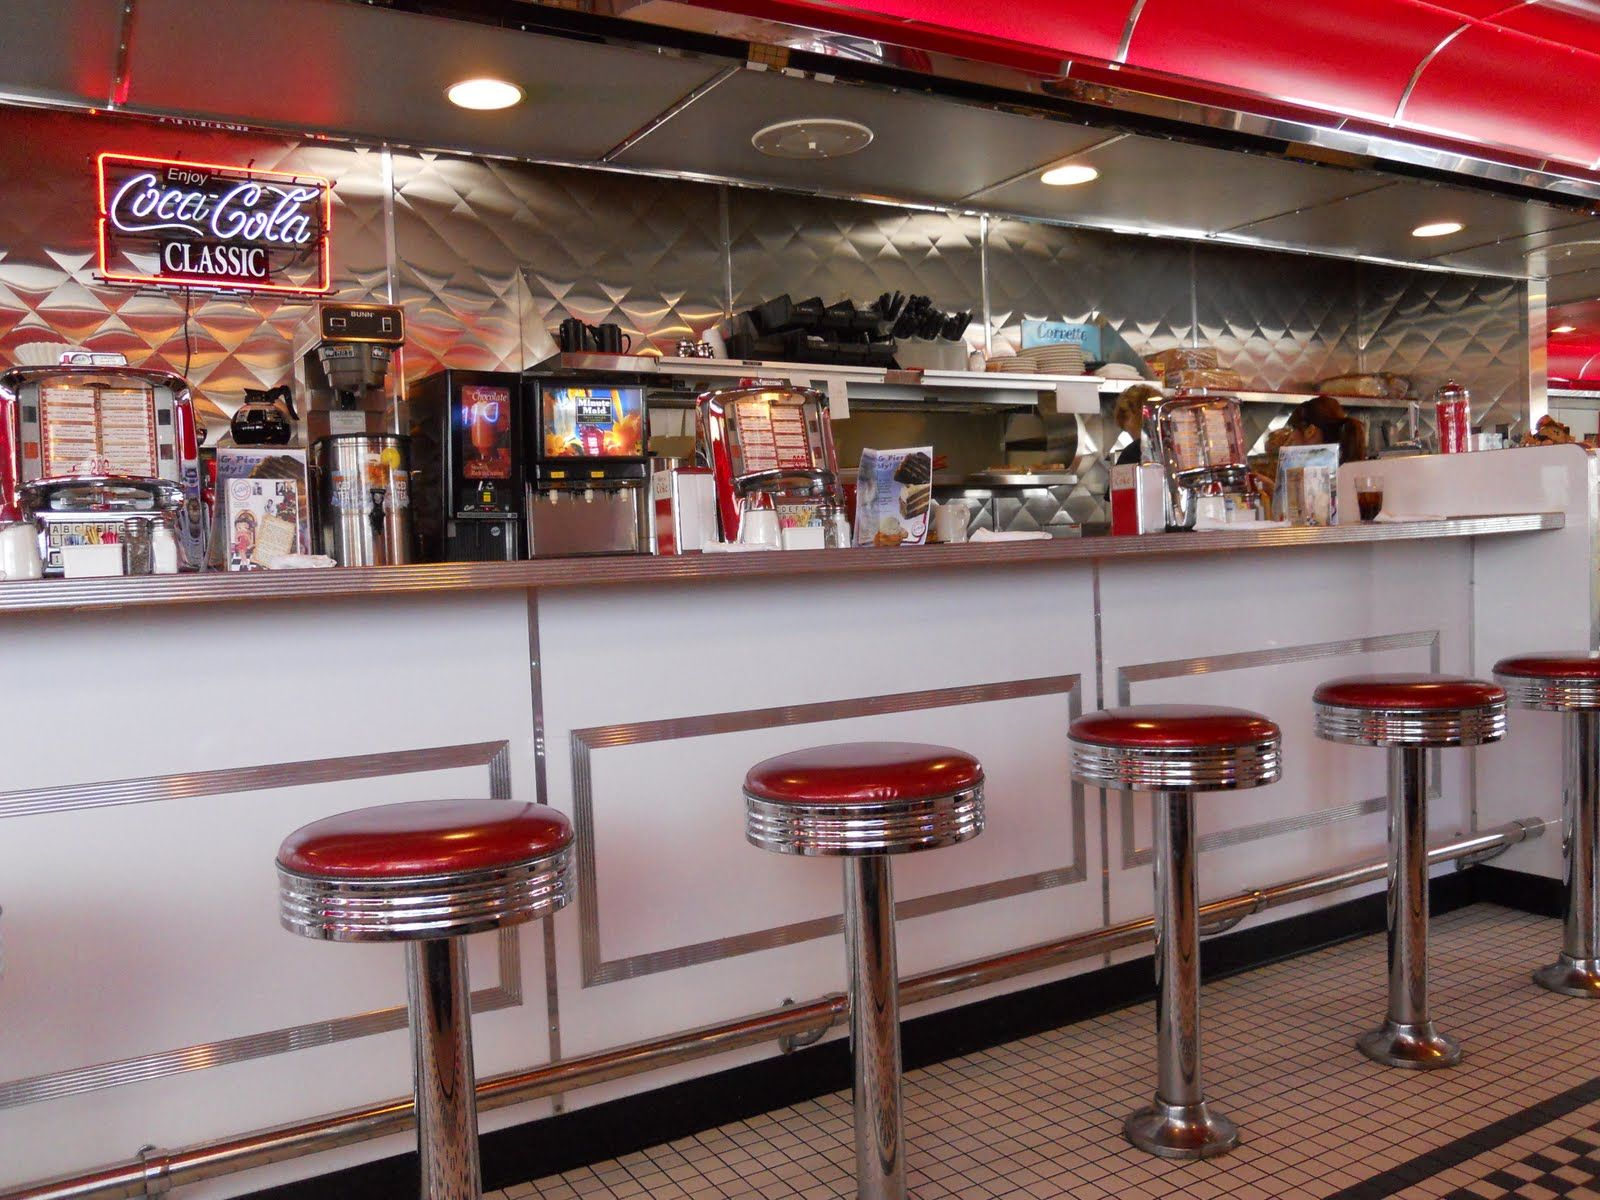 50S Diner Decor | ... breakfast on Sunday mornings. I really like ...